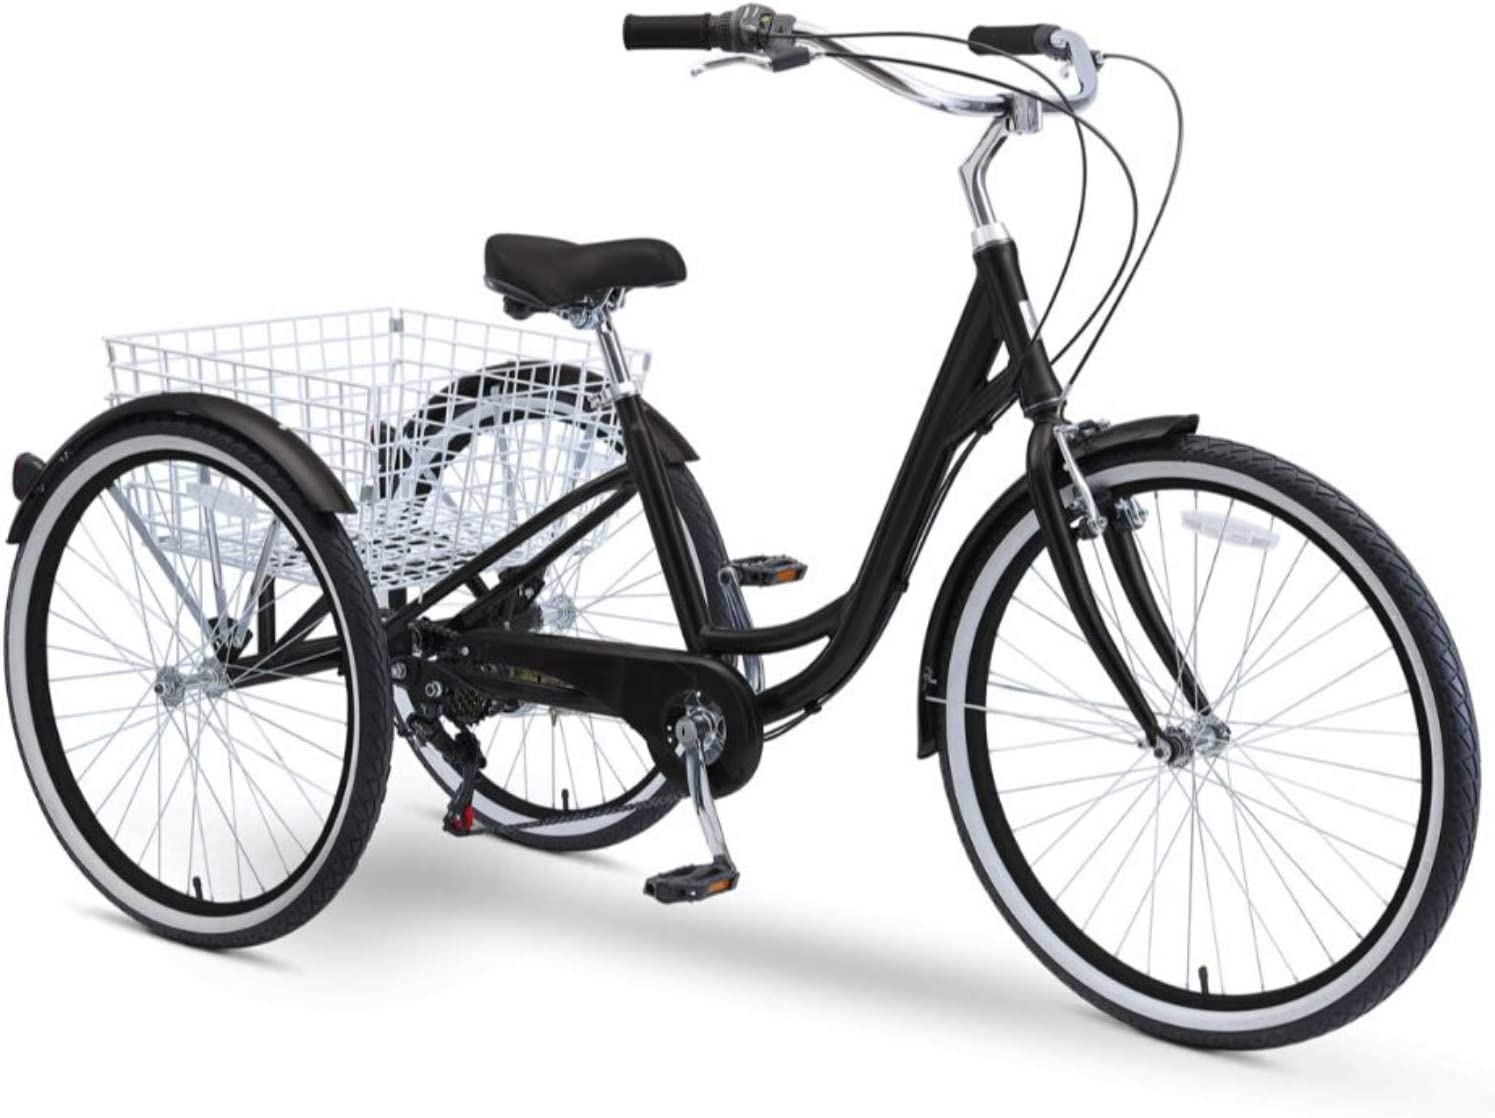 4 Best Adult Tricycles (2021 Reviews and Comparison Guide) - sixthreezero